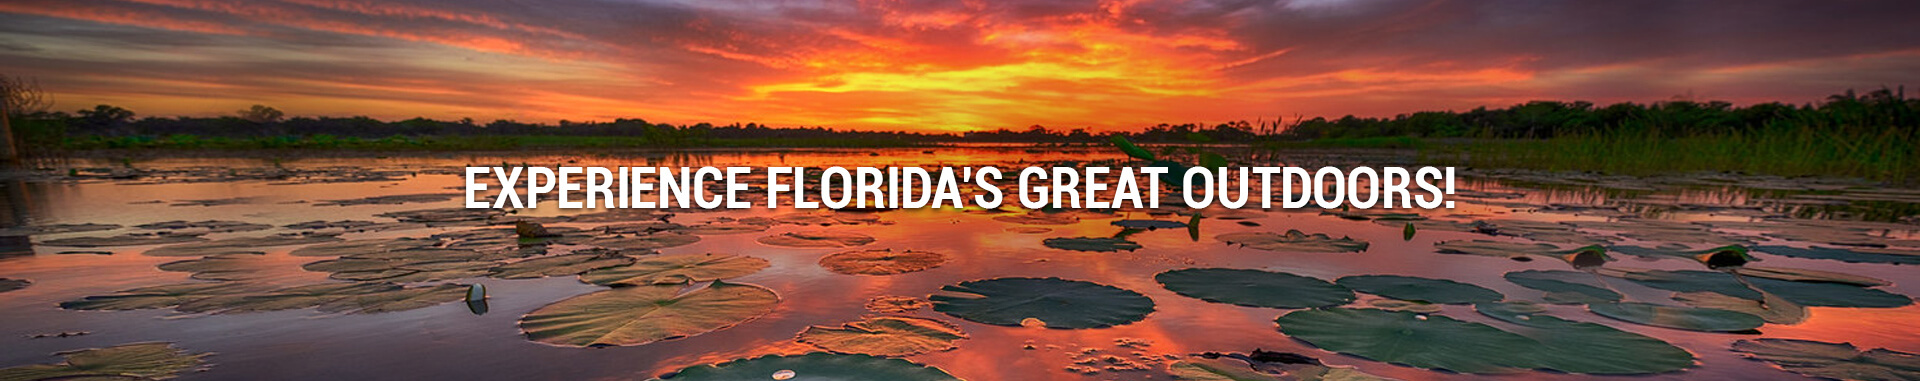 Experience Florida's Great Outdoor!